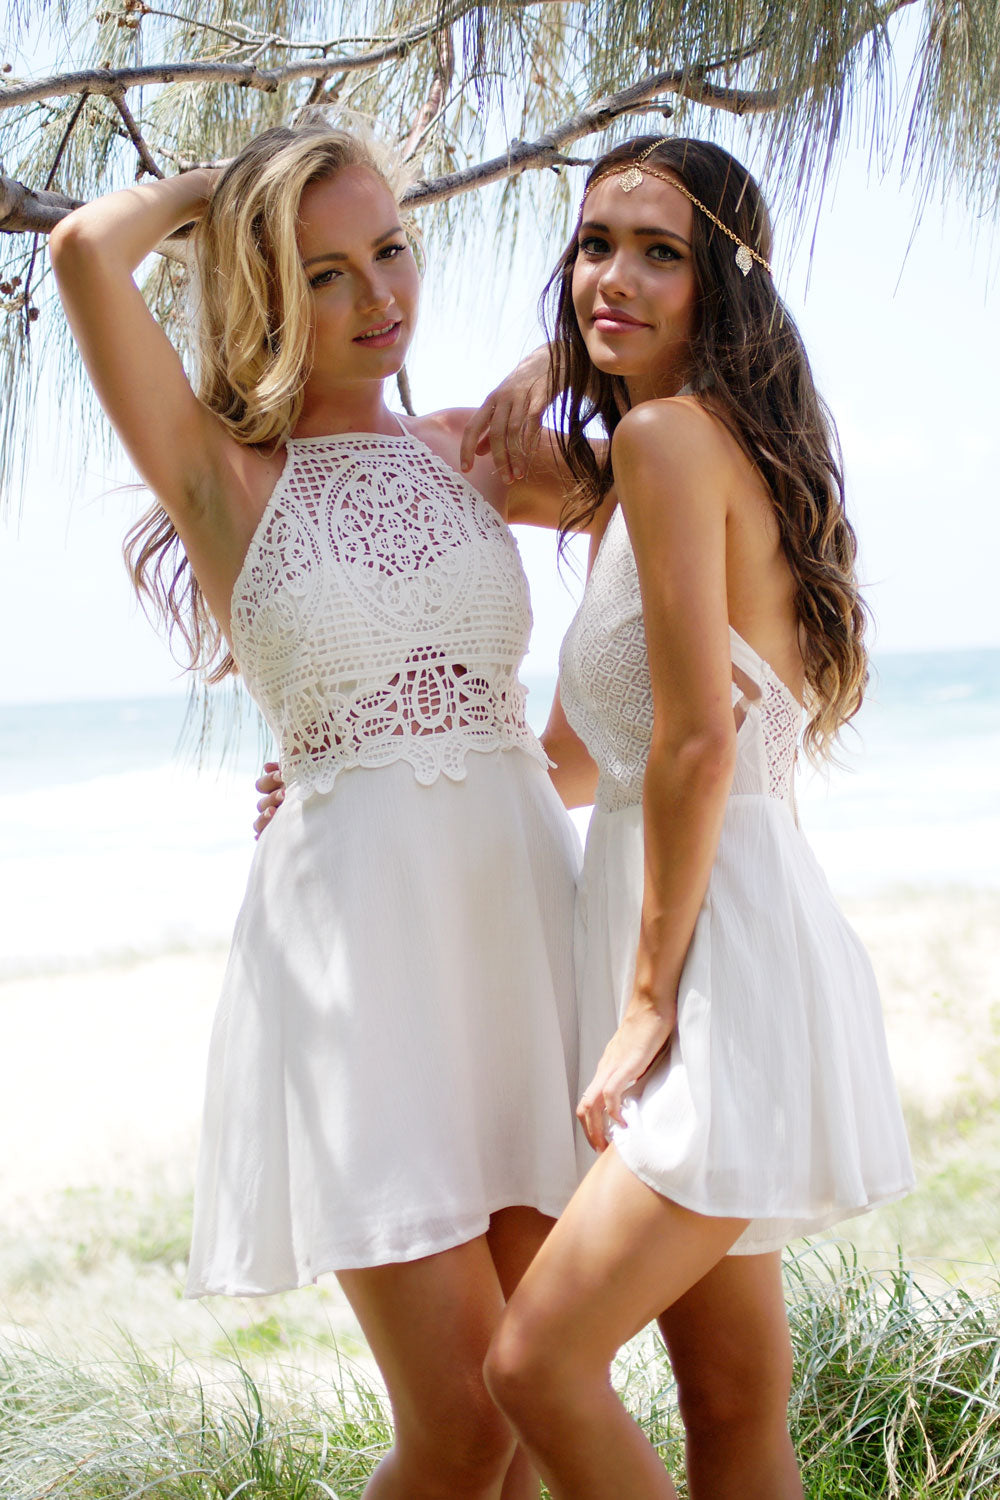 Two models standing together modelling white lace garments